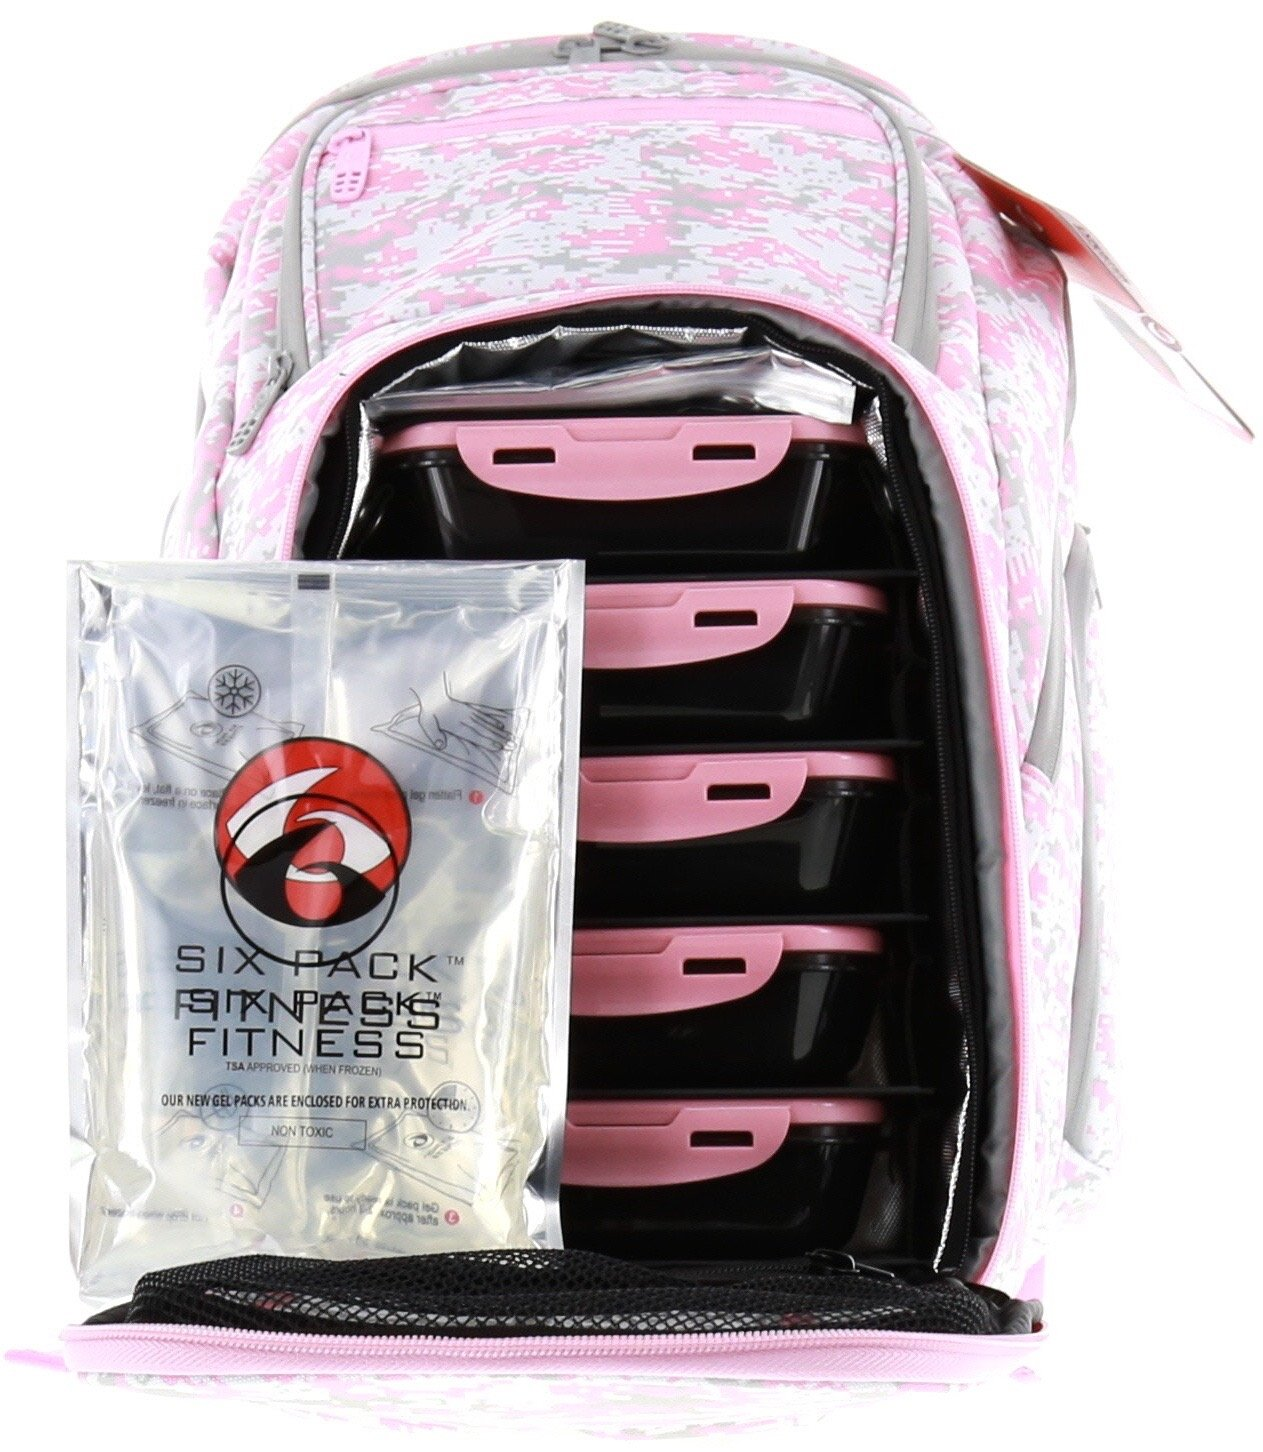 6 Pack Fitness Expedition Backpack W/ Removable Meal Management System 500 Pink & Grey Digital Camo w/ Bonus ZogoSportz Cyclone Shaker by 6 Pack Fitness (Image #4)